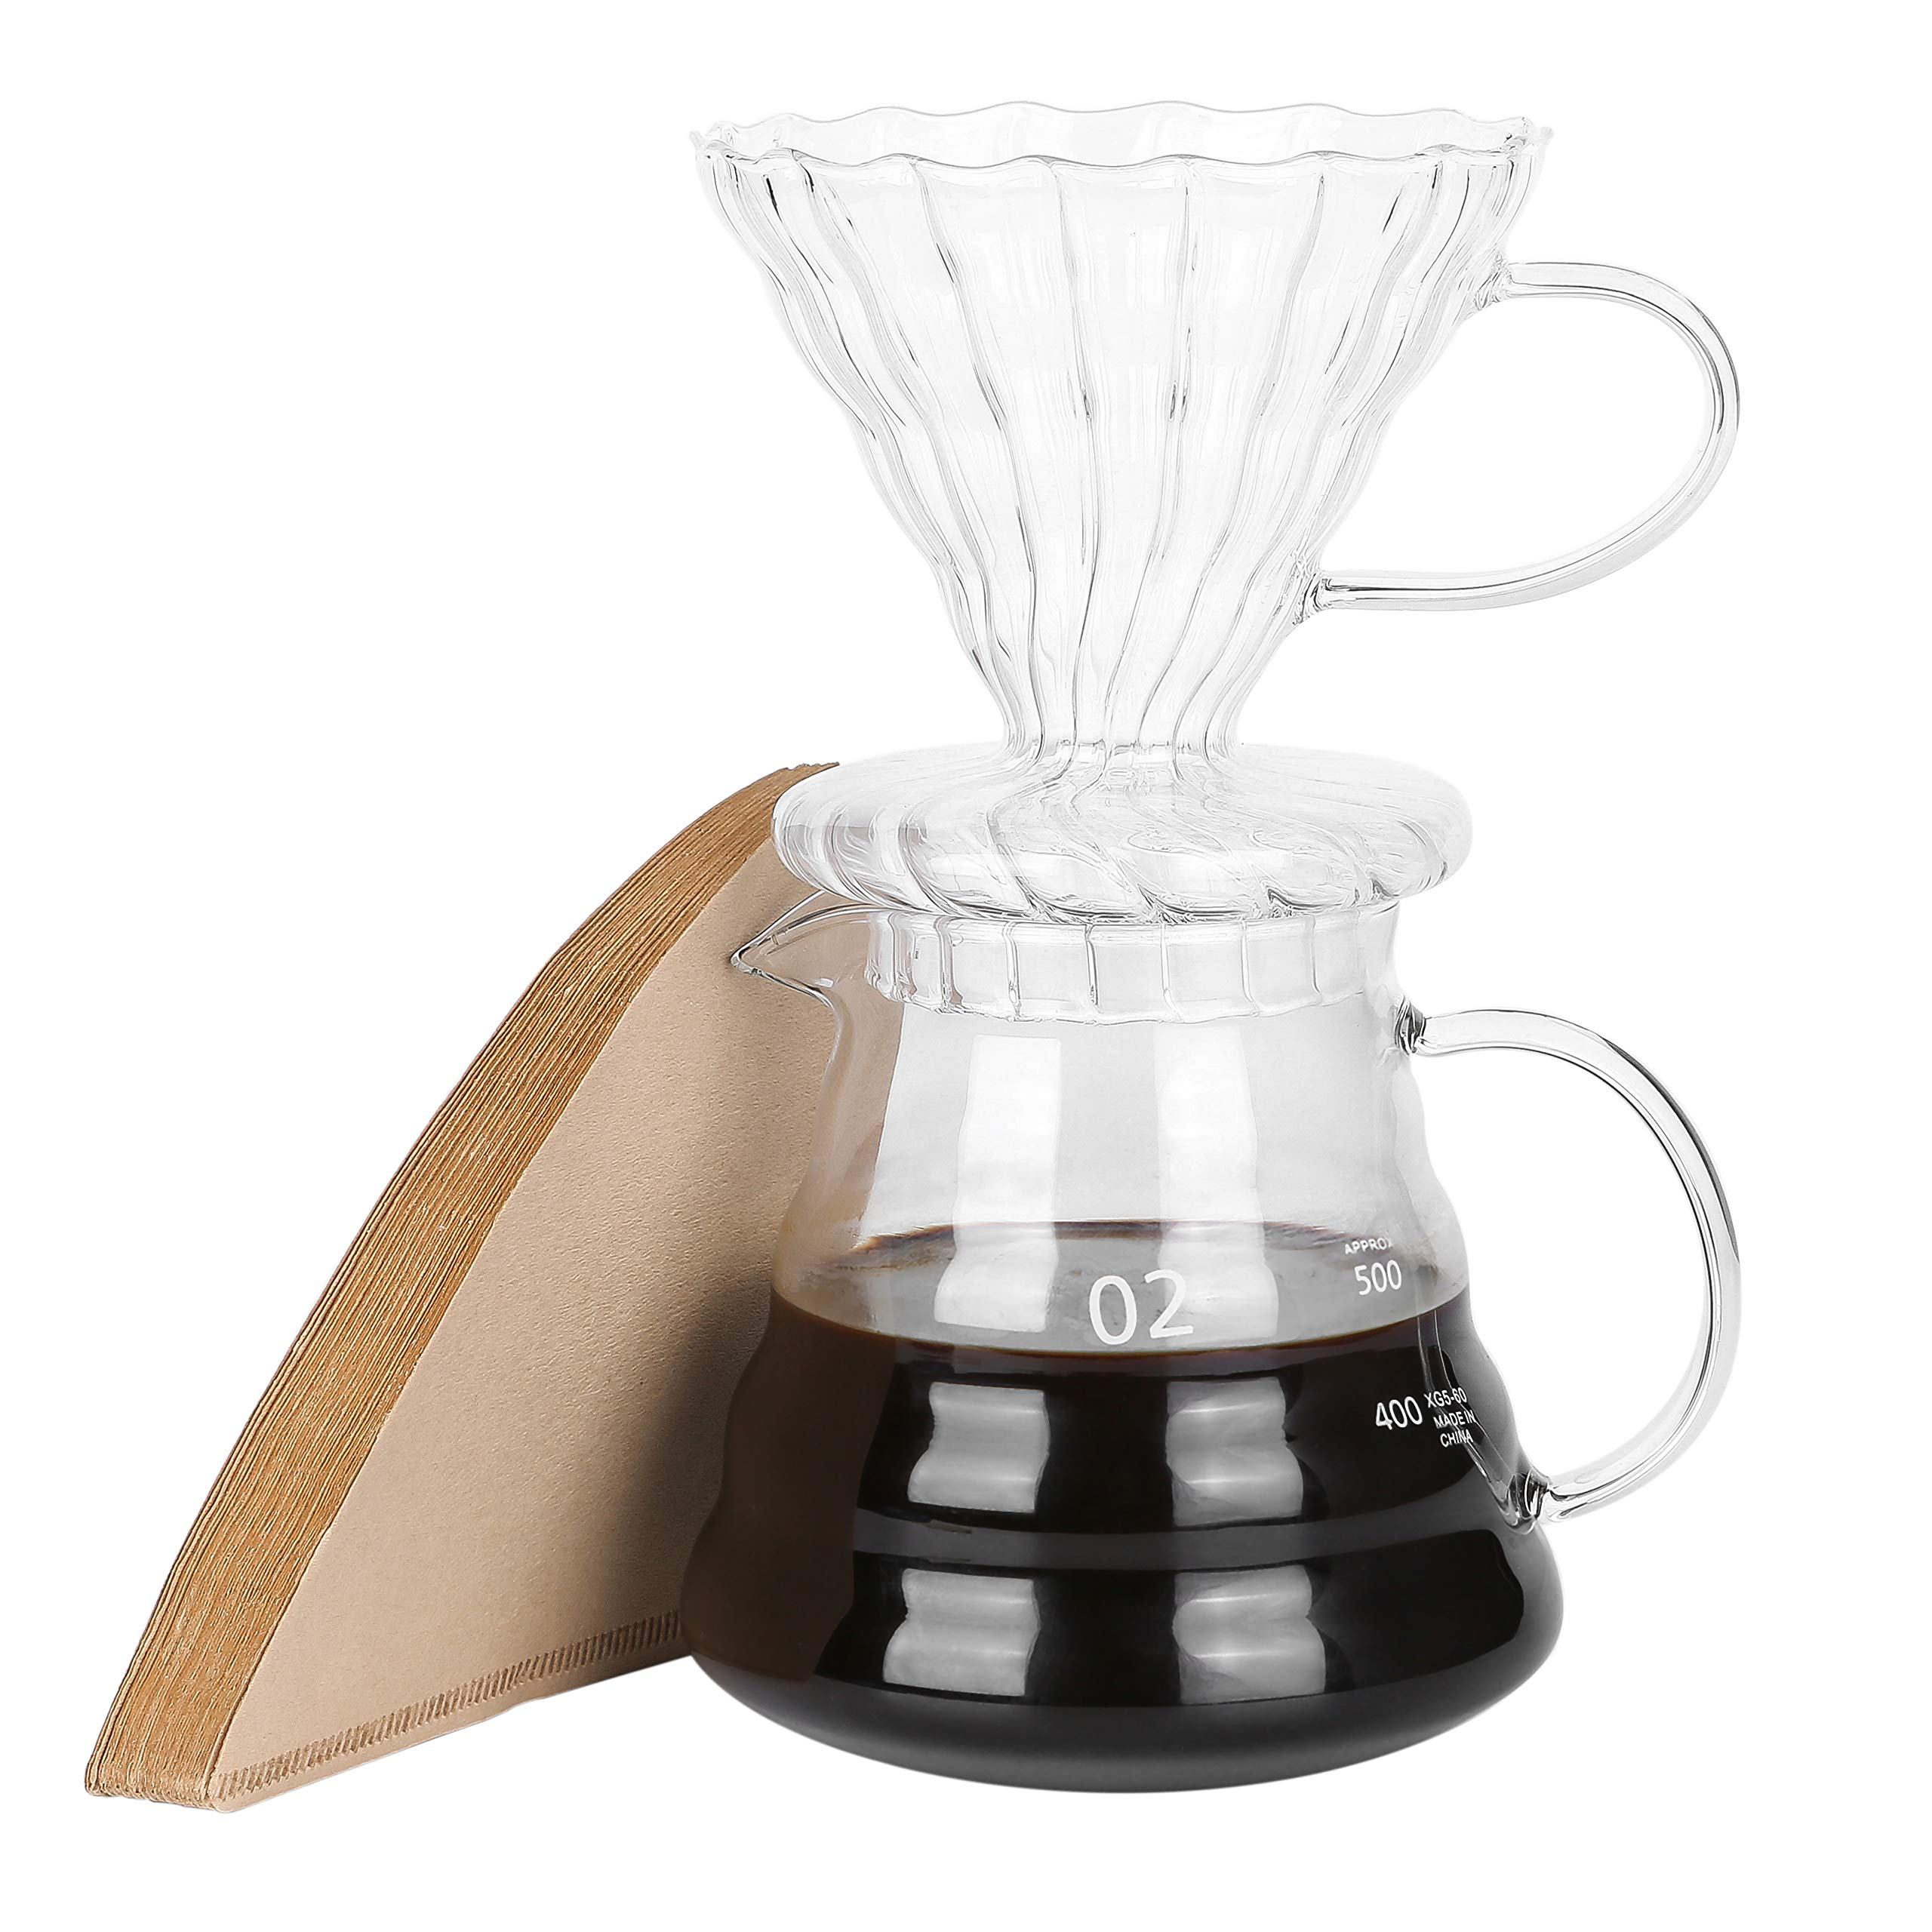 Pour Over Coffee Dripper  Brew 4 Cups Heat Resistant High Borosilicate Glass Coffee Maker Come with Filter Paper 20oz Coffee Server with Lid by HT